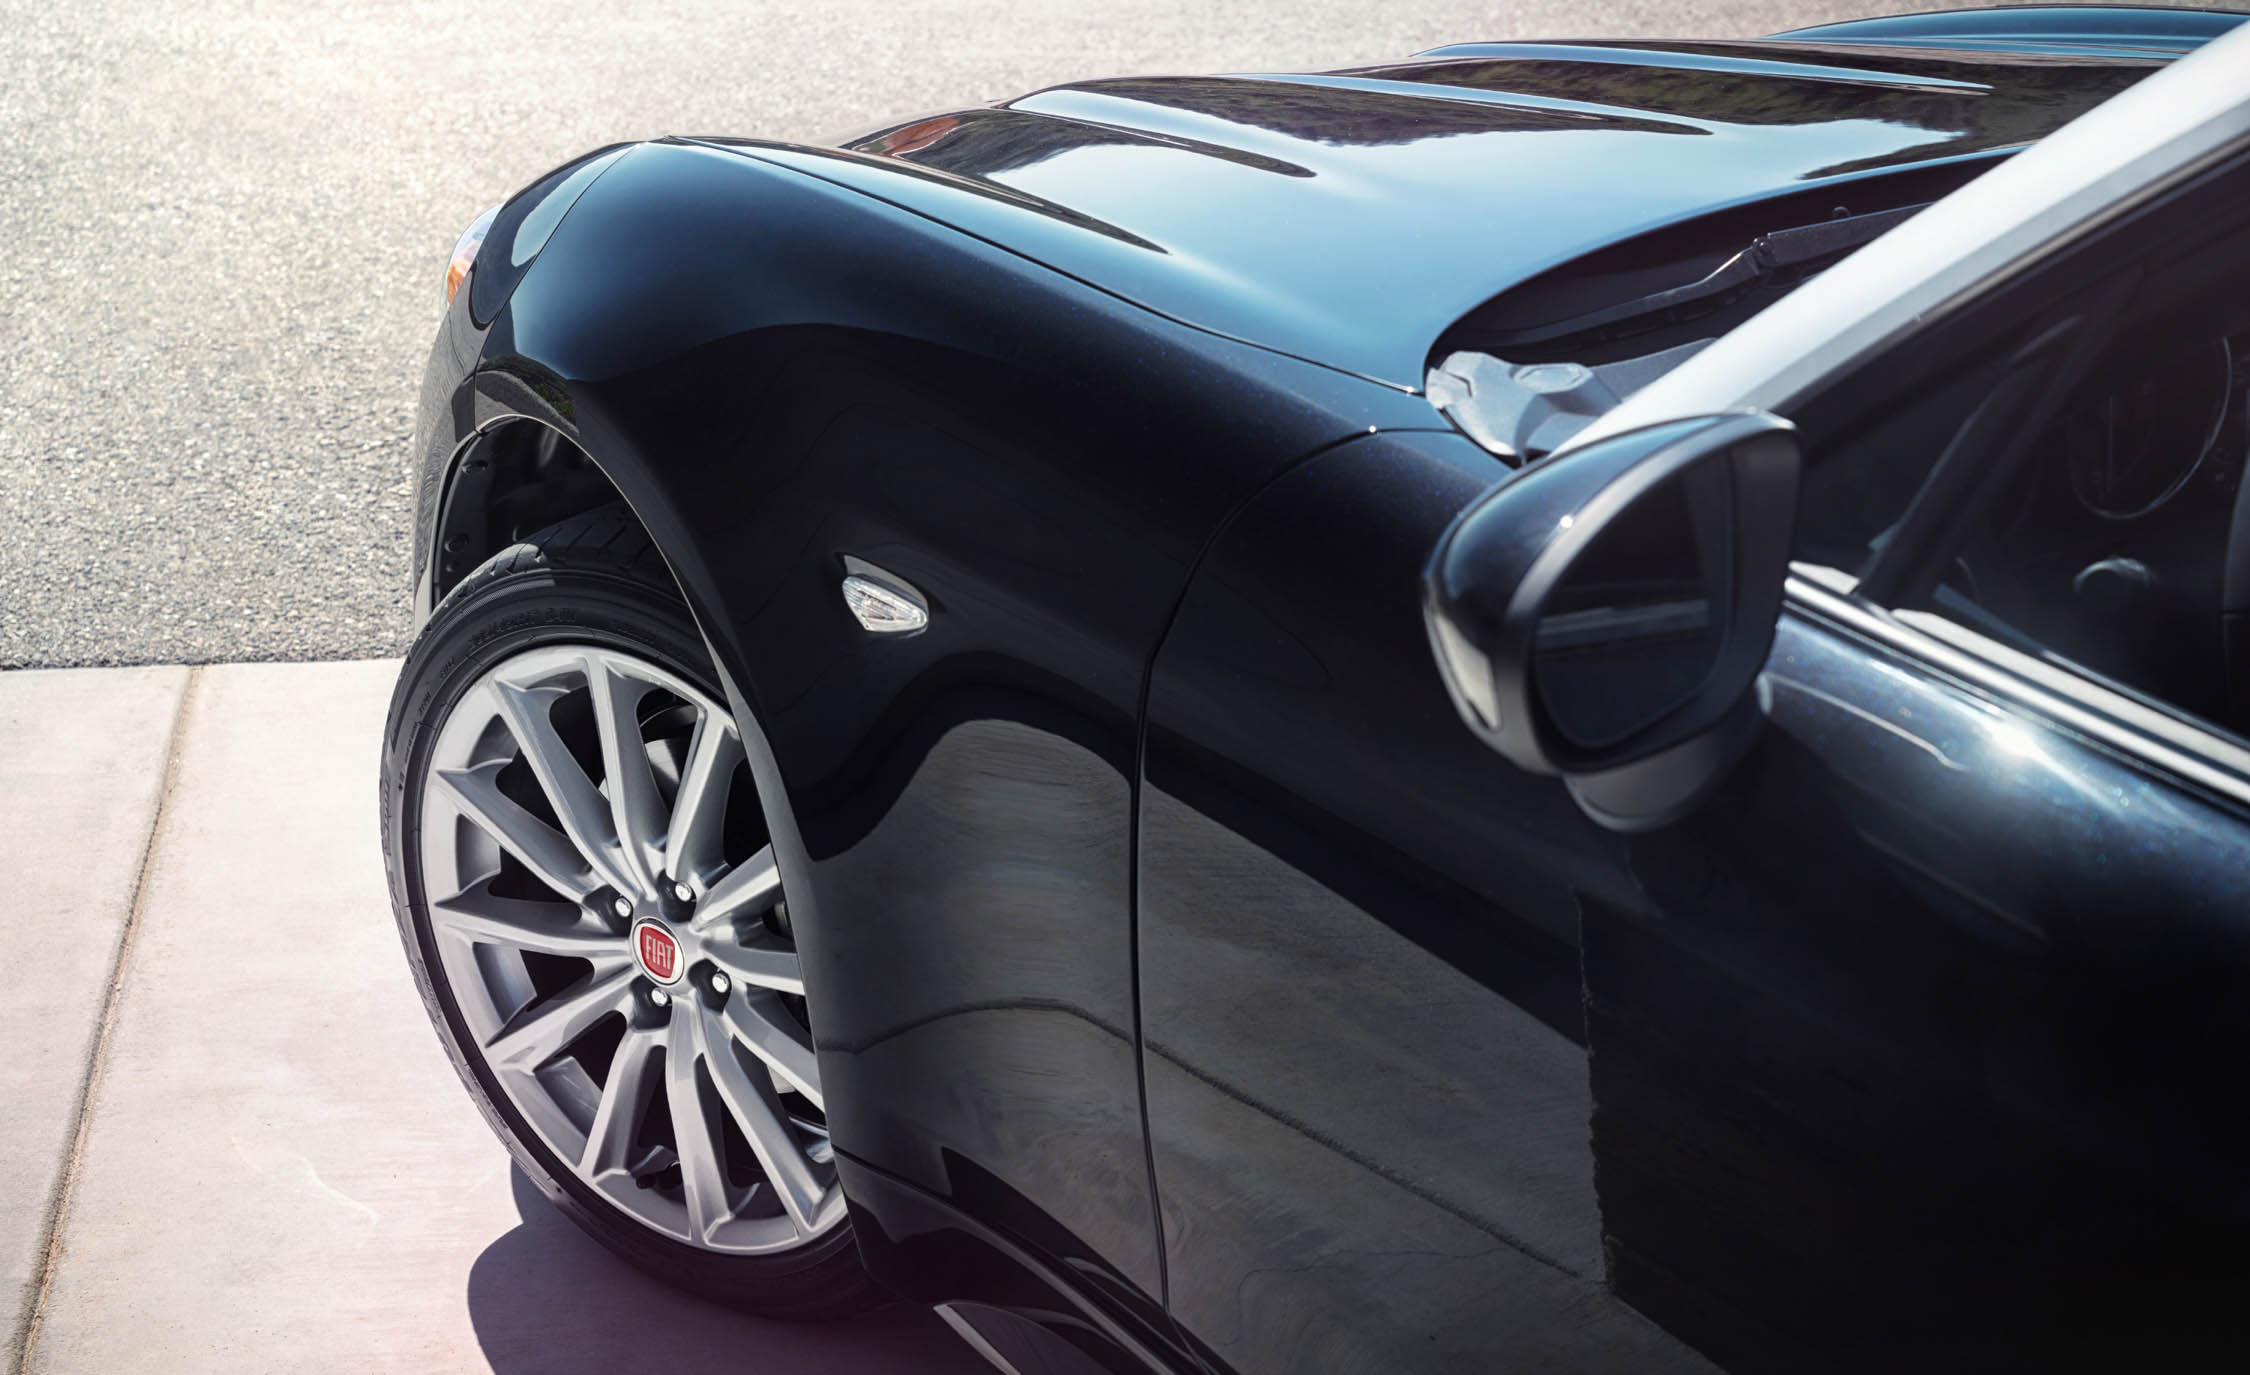 2017 Fiat 124 Spider Front Wheel (View 4 of 23)